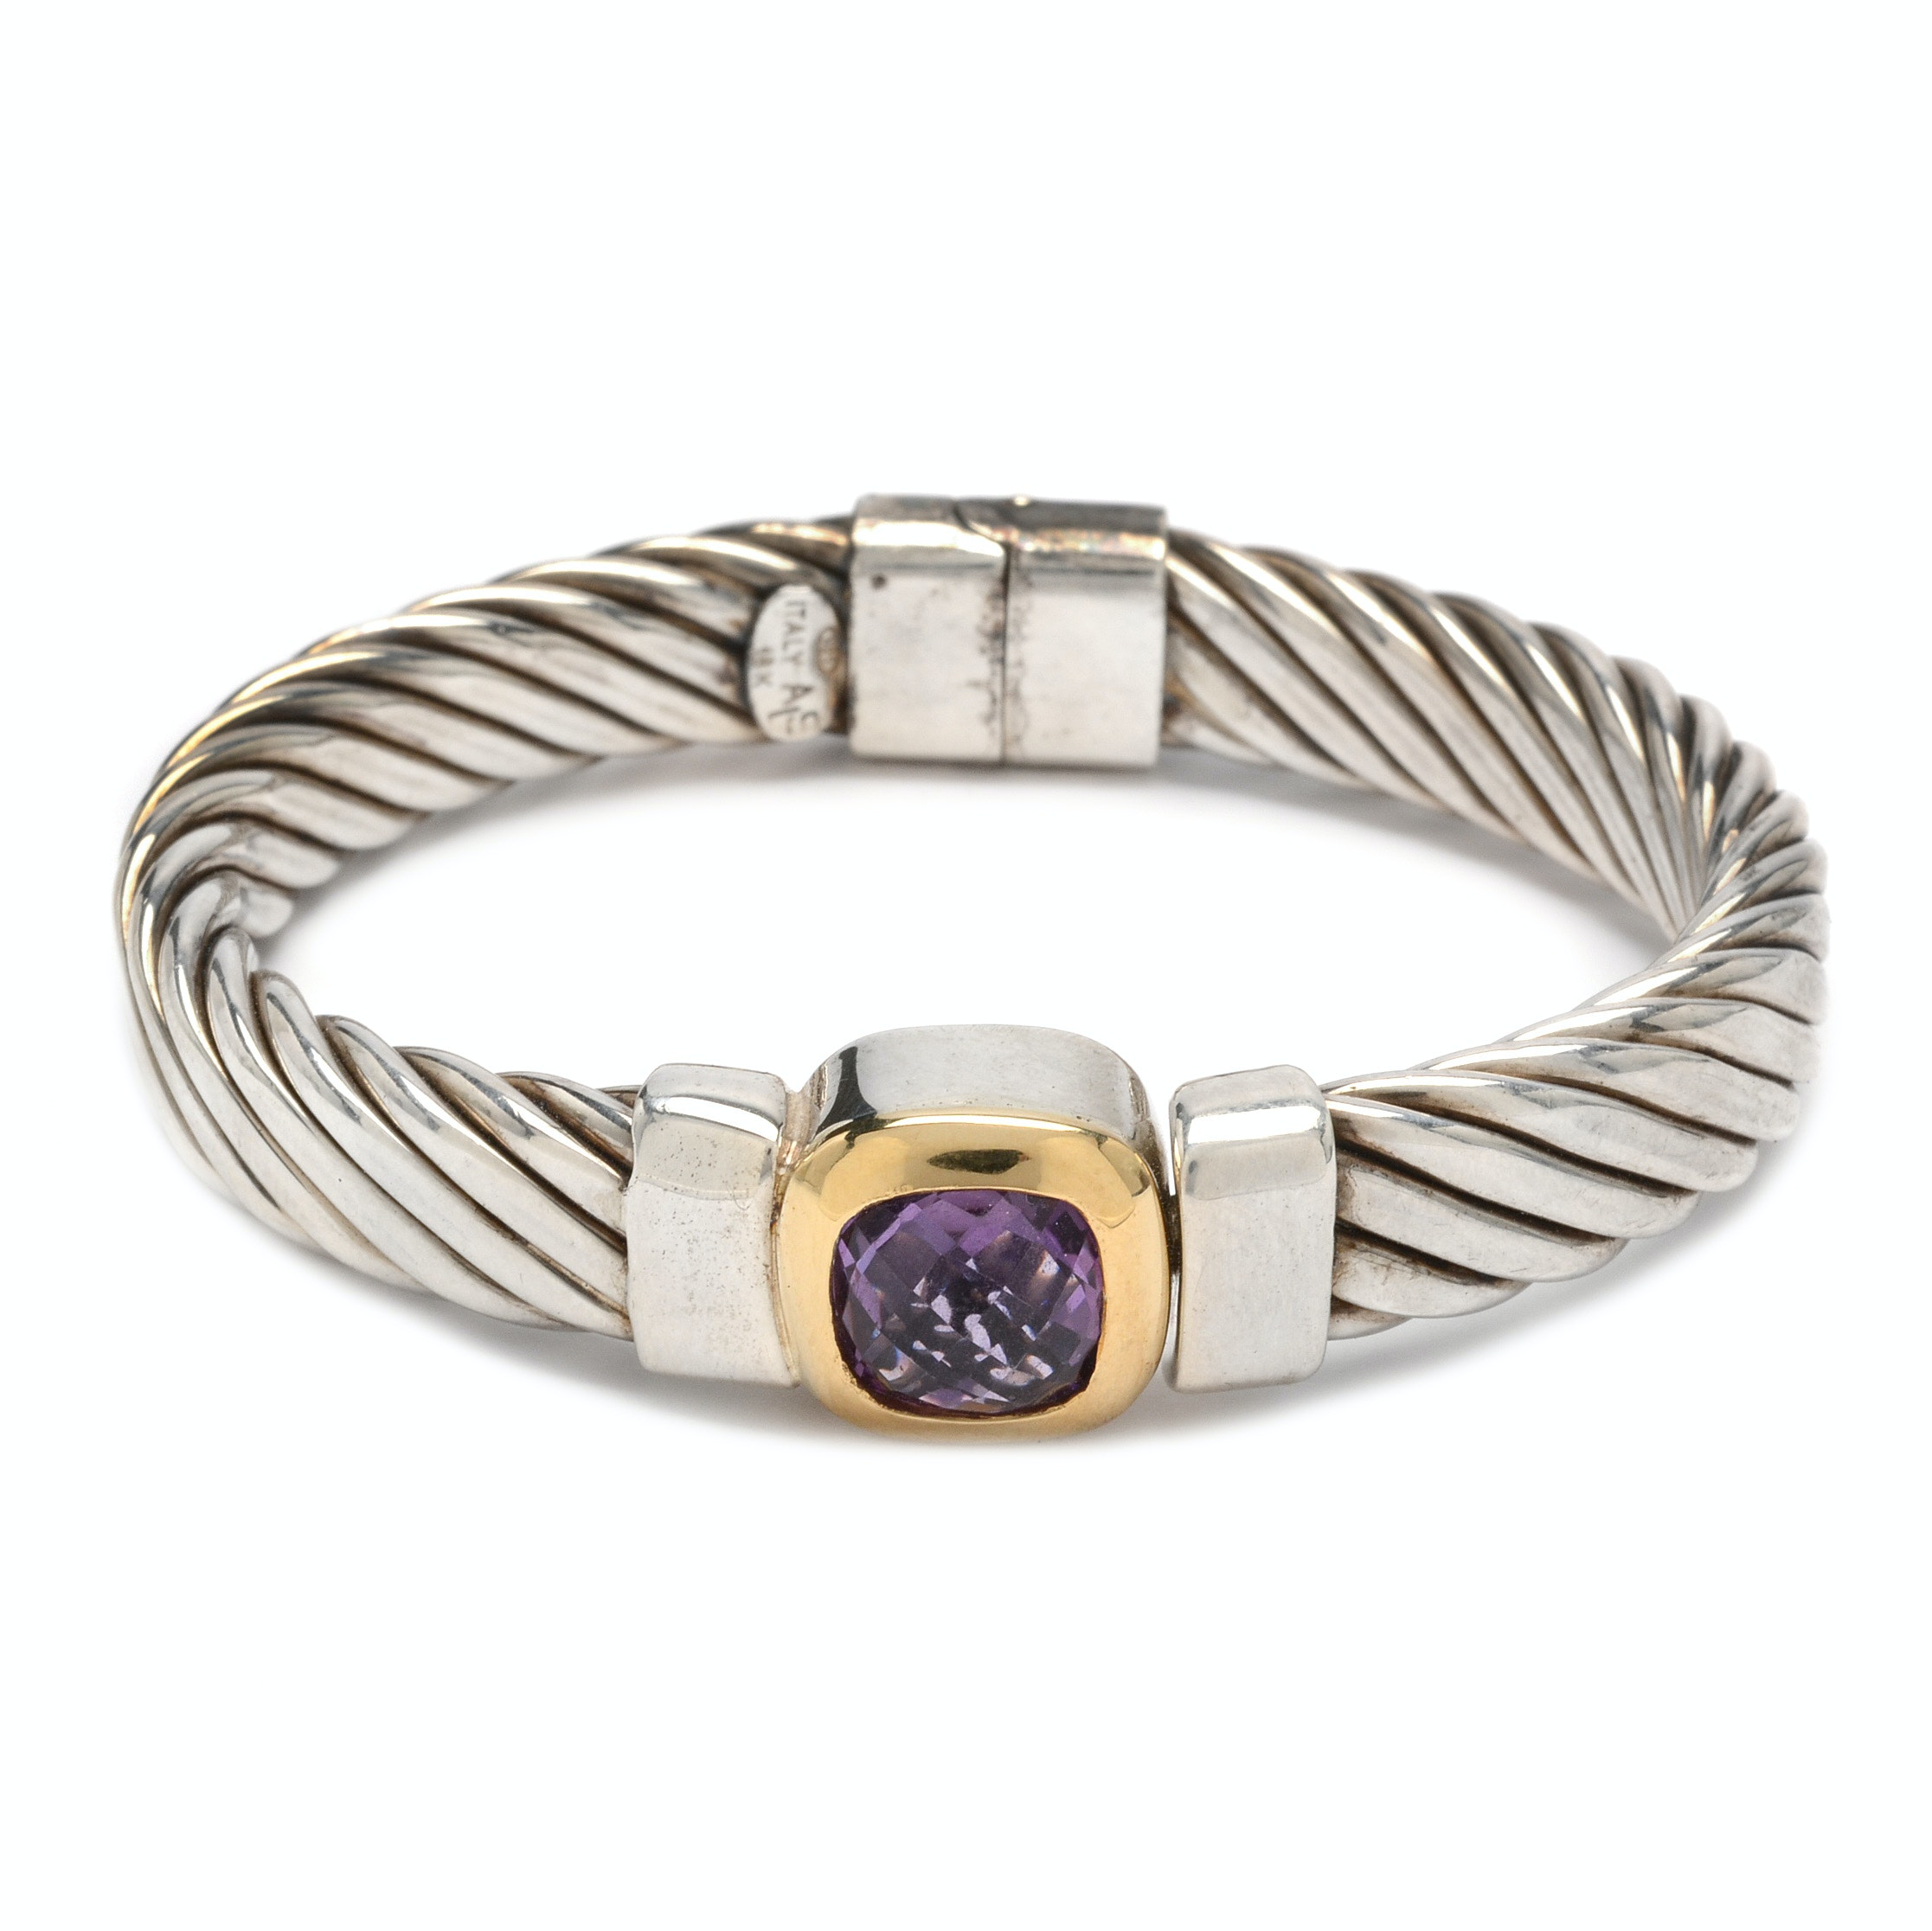 Sterling Silver and Amethyst Hinged Bracelet with 18K Yellow Gold Accents